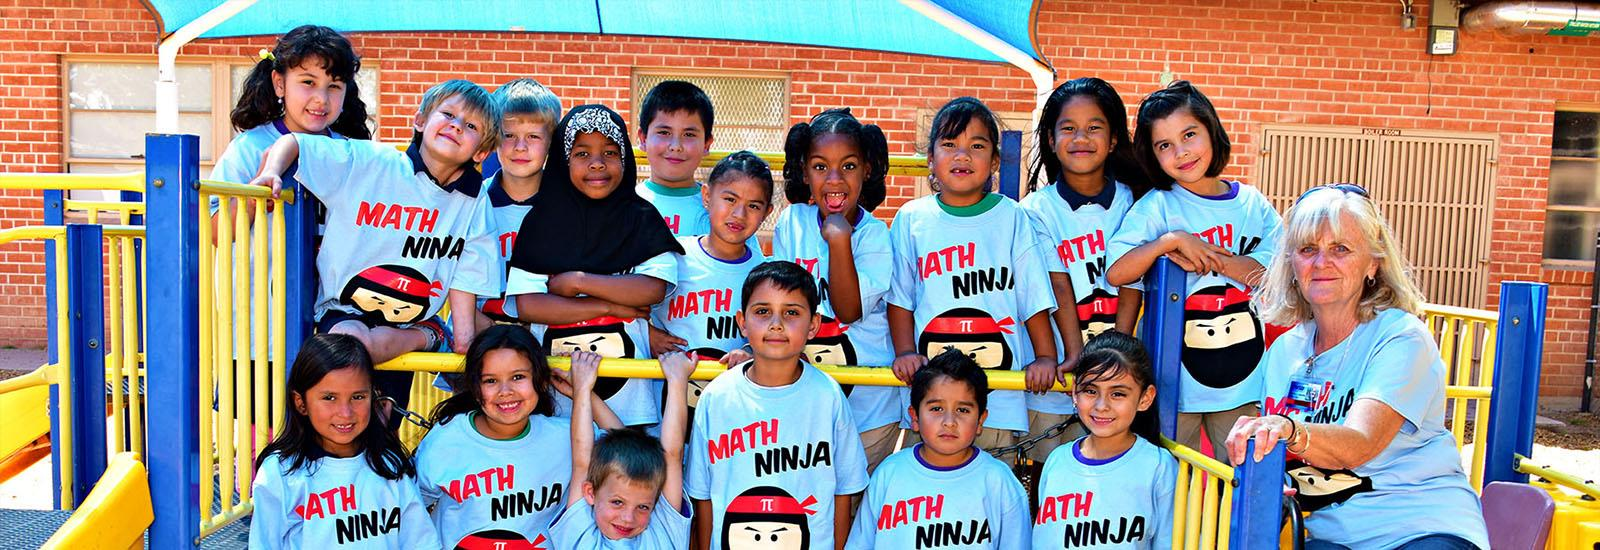 We are proud of our Math Ninjas!